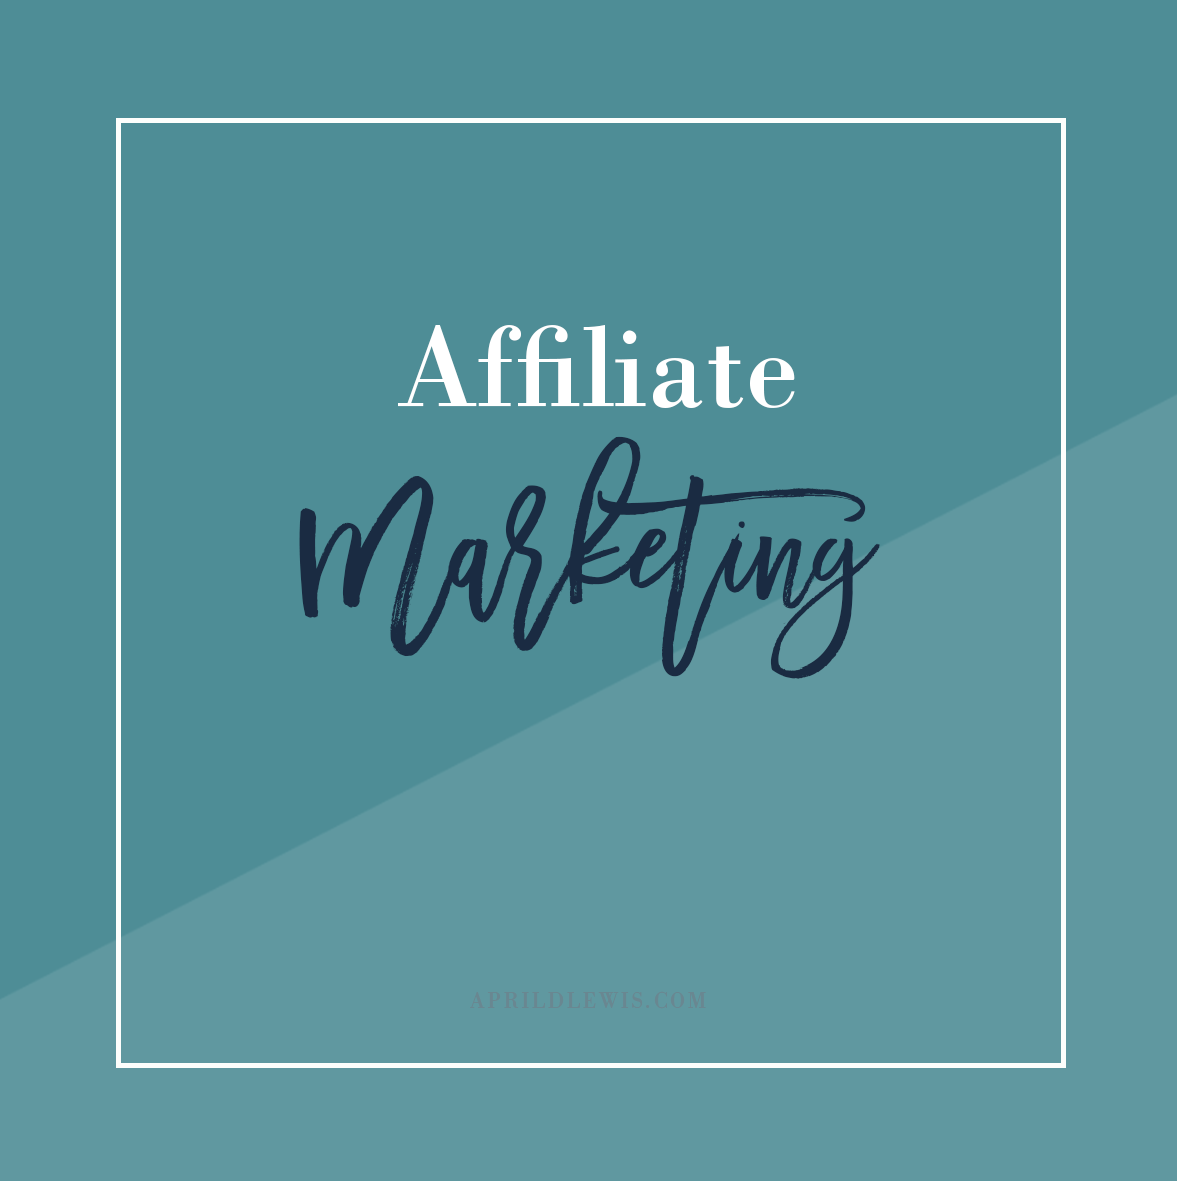 Click here for affiliate marketing articles